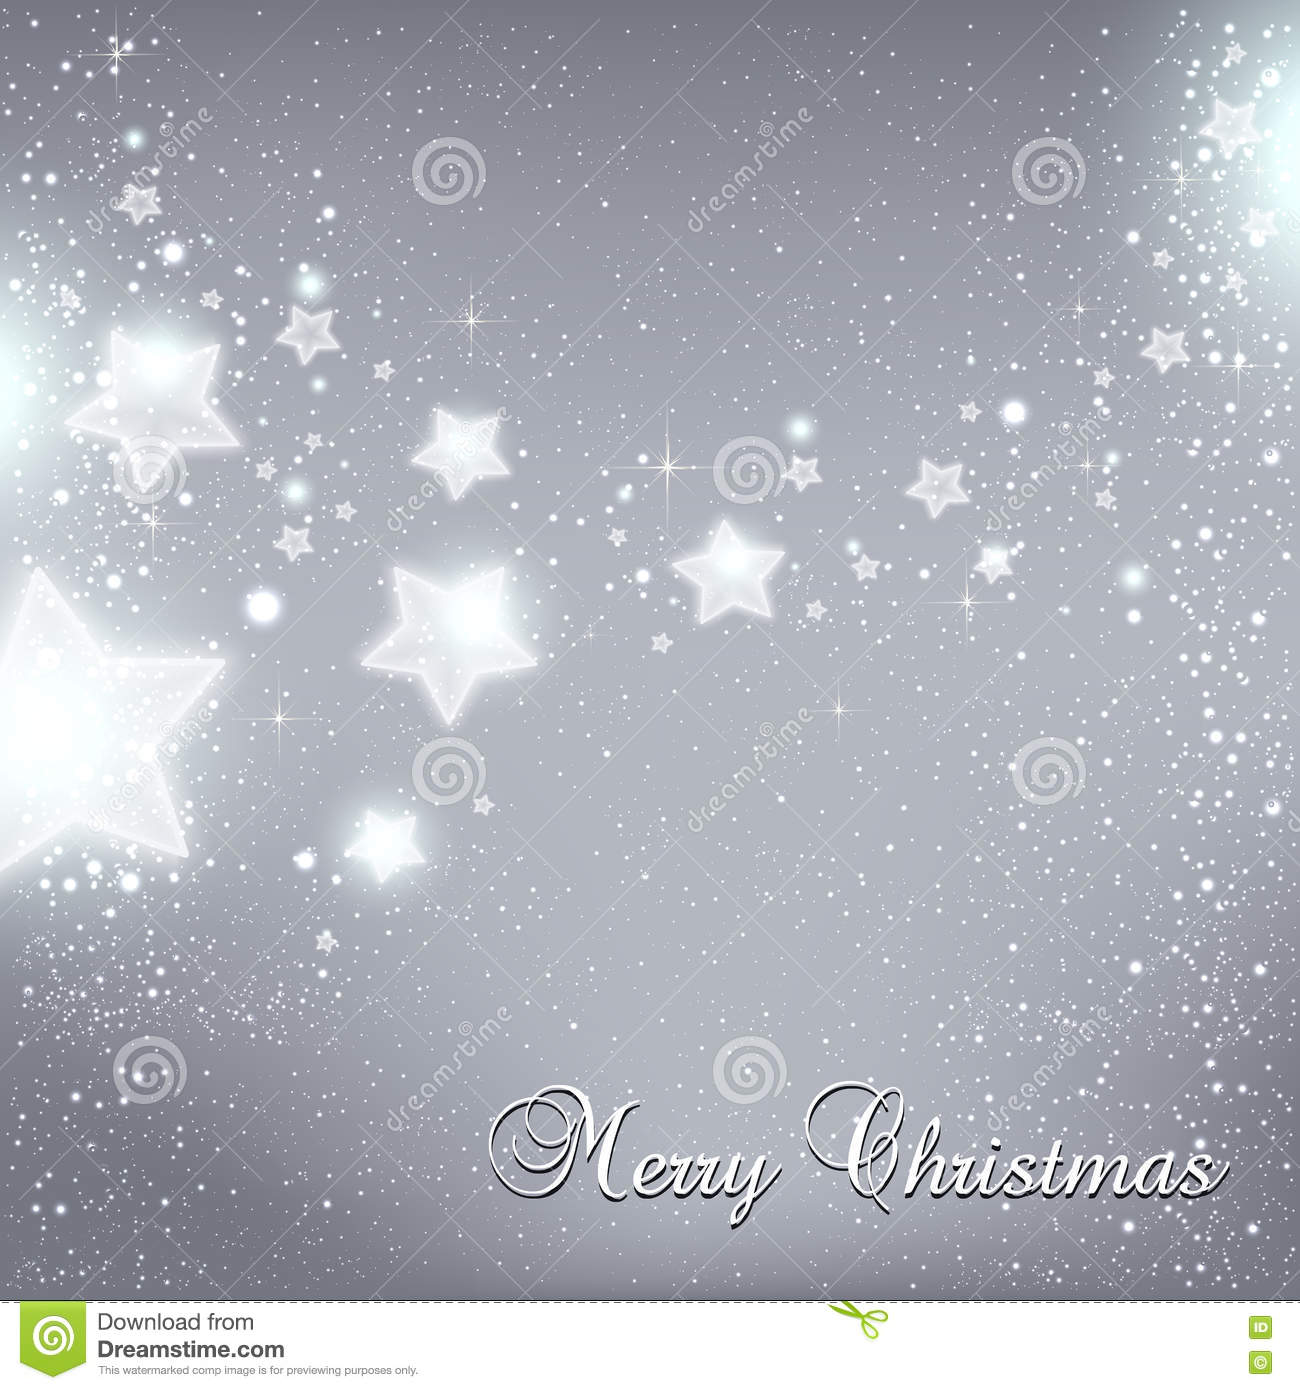 christmas and new year star for celebration on grey background with light dots snowflakes